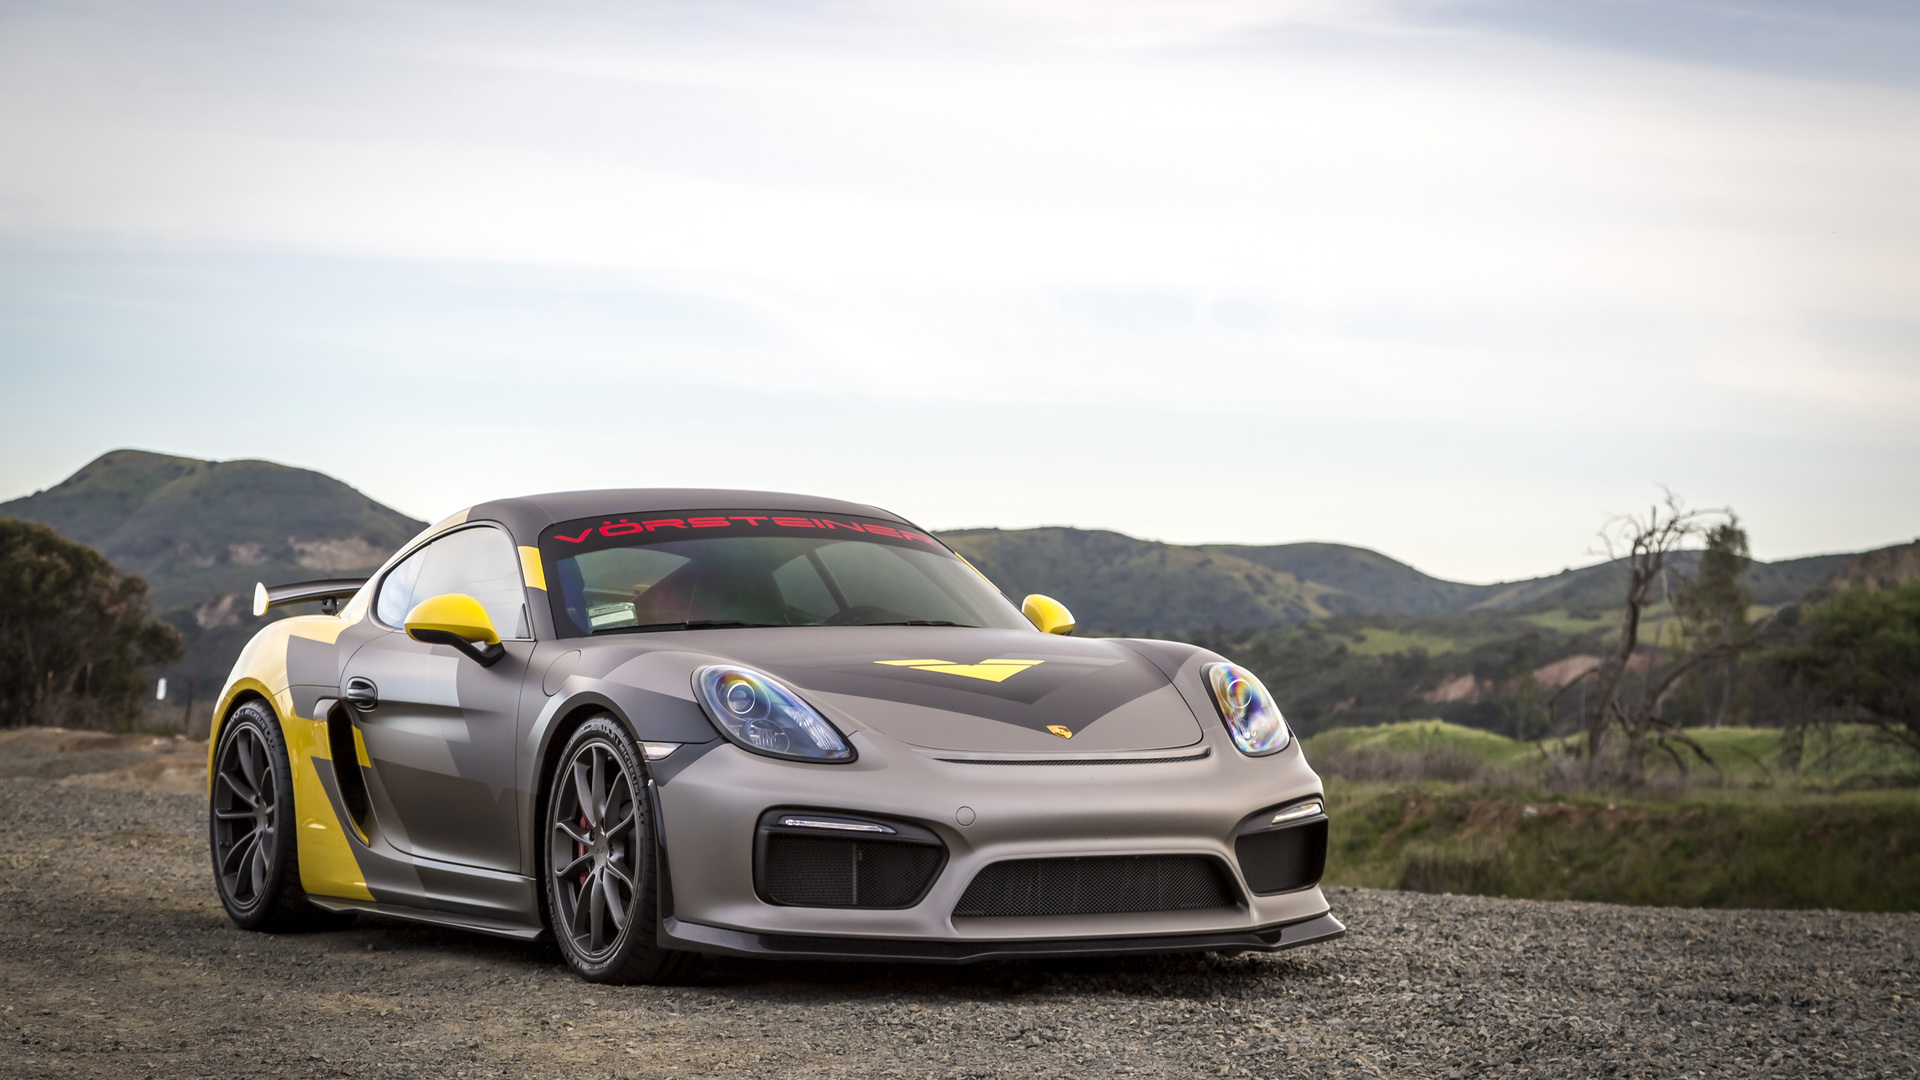 1920x1080 Porsche Cayman GT4 Vorsteiner Laptop Full HD